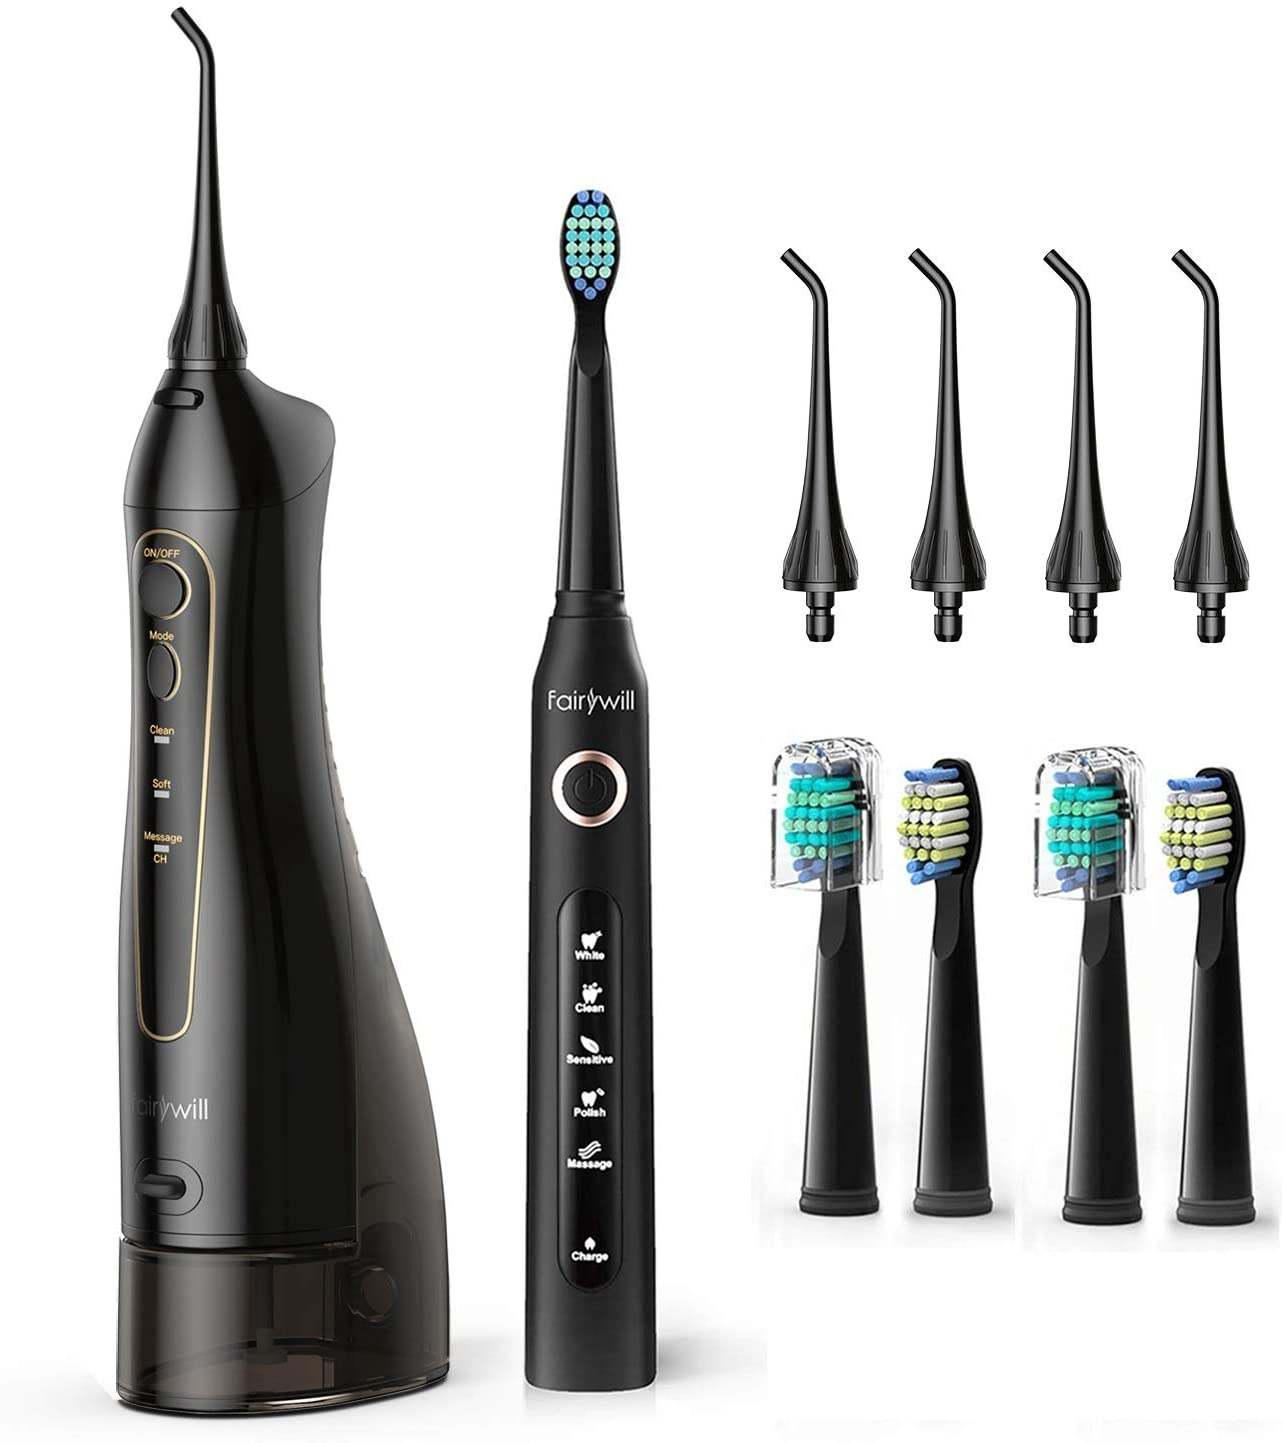 Fairywill Teeth Cleaner Set Water Flosser And Toothbrush Combo 5 Modes and 4 Brush Heads